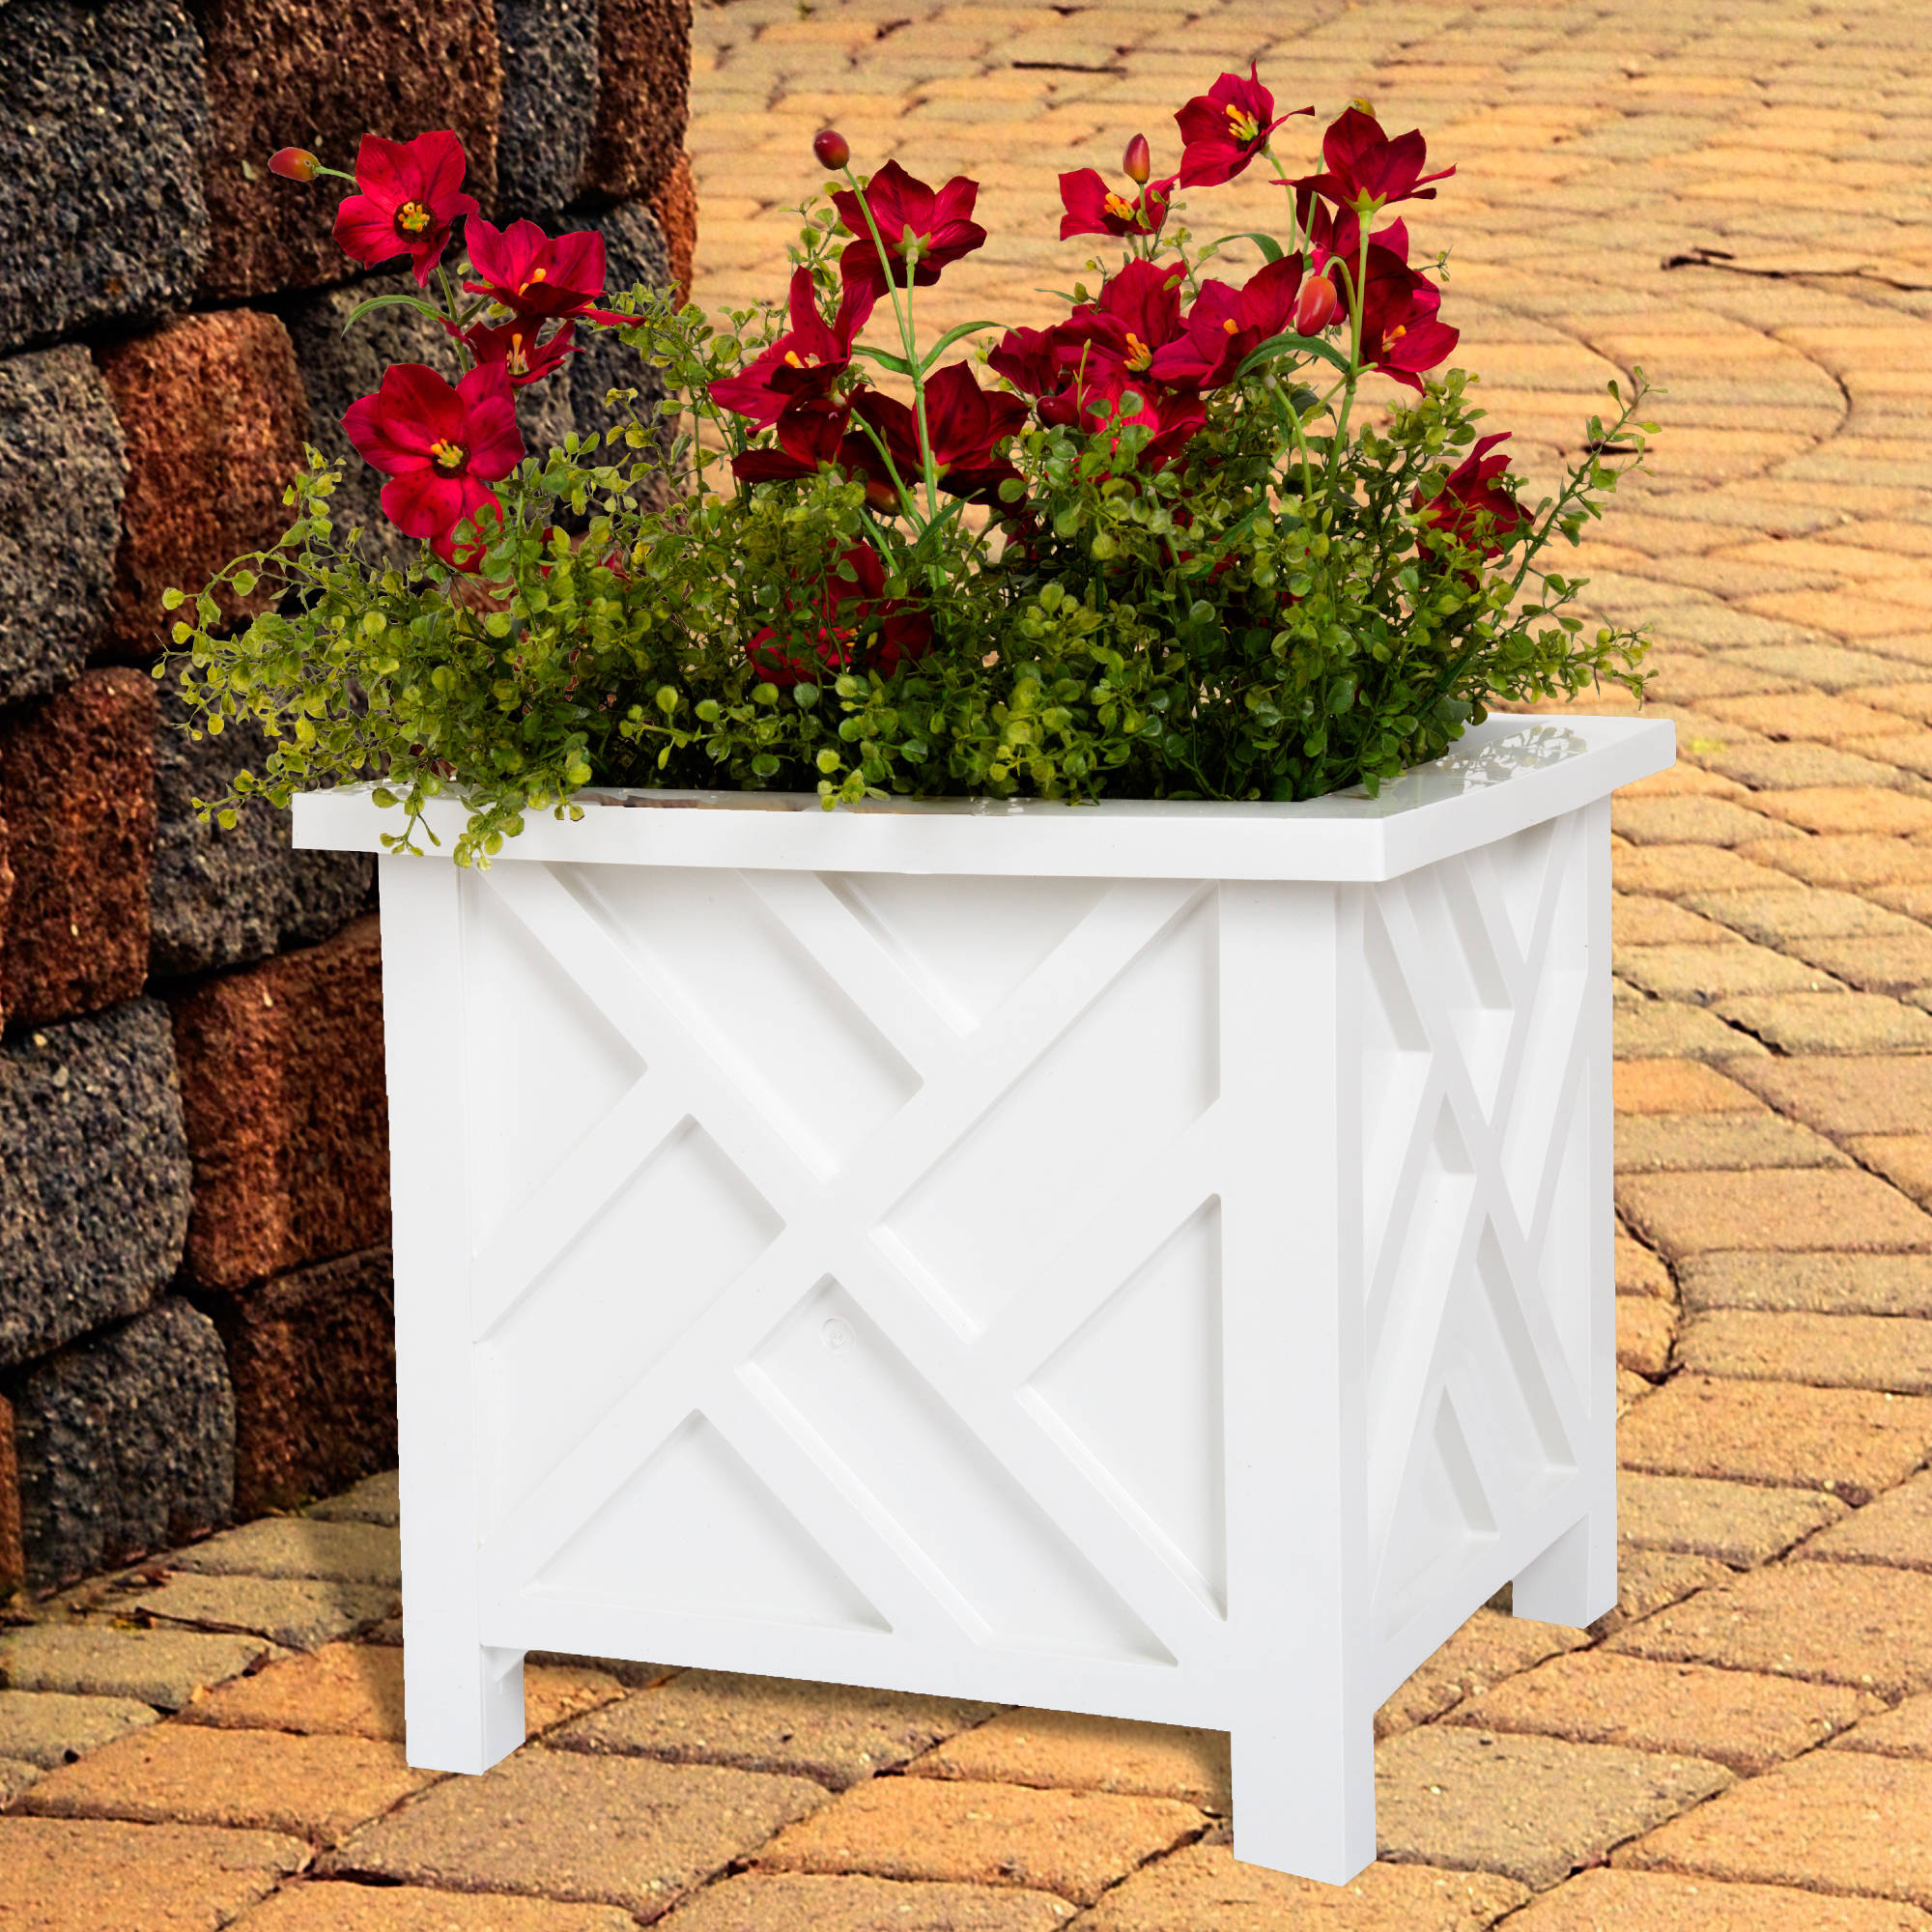 Plant Holder � Planter Container Box for Garden, Patio, and Lawn � Outdoor Decor by Pure Garden � White by Trademark Global LLC